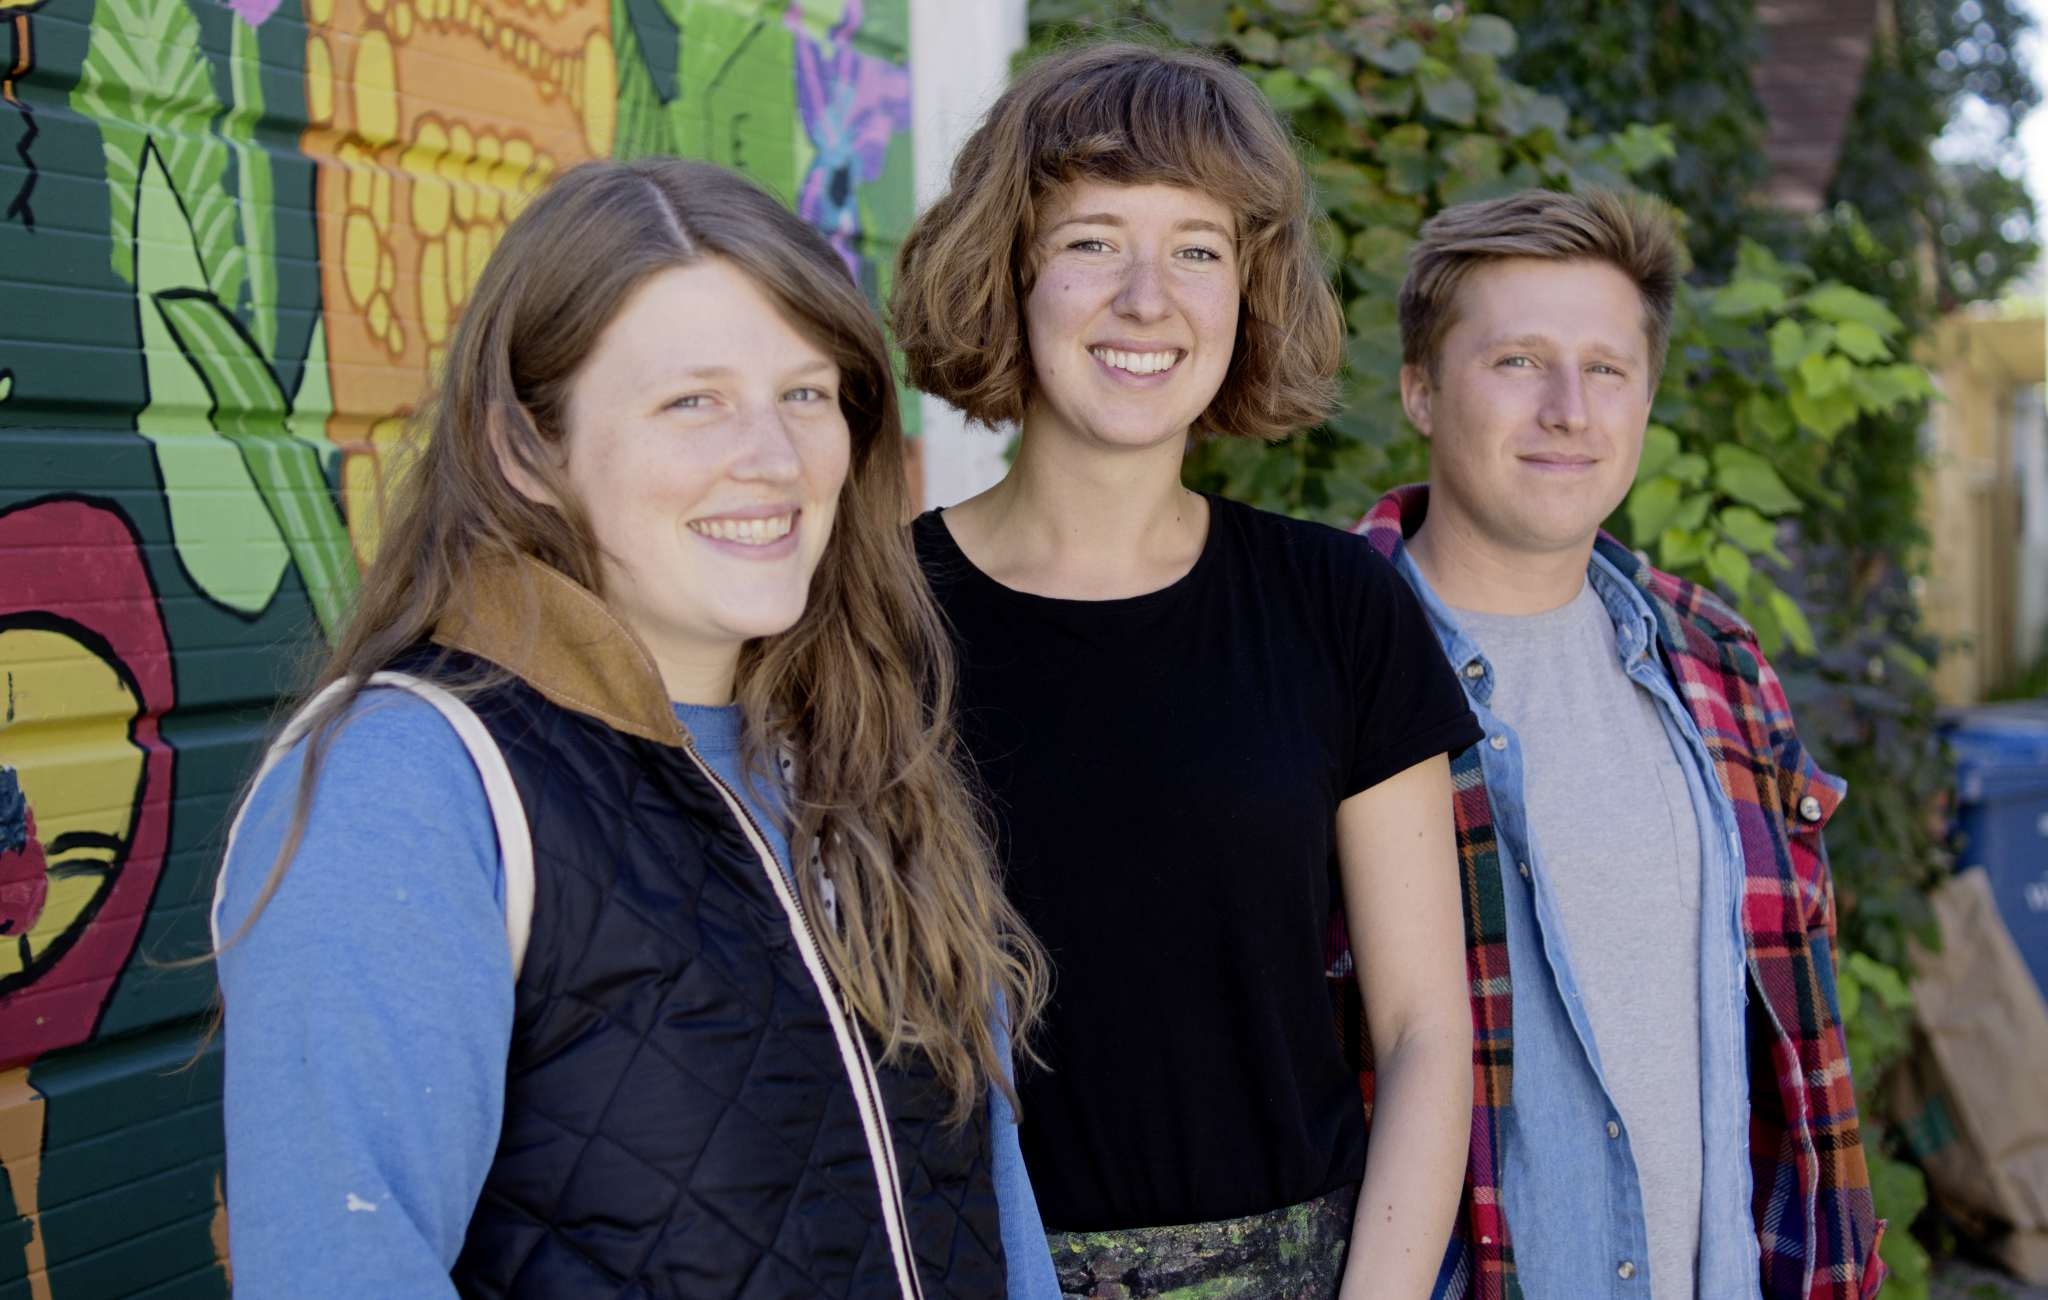 (From left) Hannah Doucet, Natalie Baird, and Toby Gillies will be creating a mural at Little Sister Coffee Maker as part of Synonym Art Consultation's Wall-to-Wall mural festival.